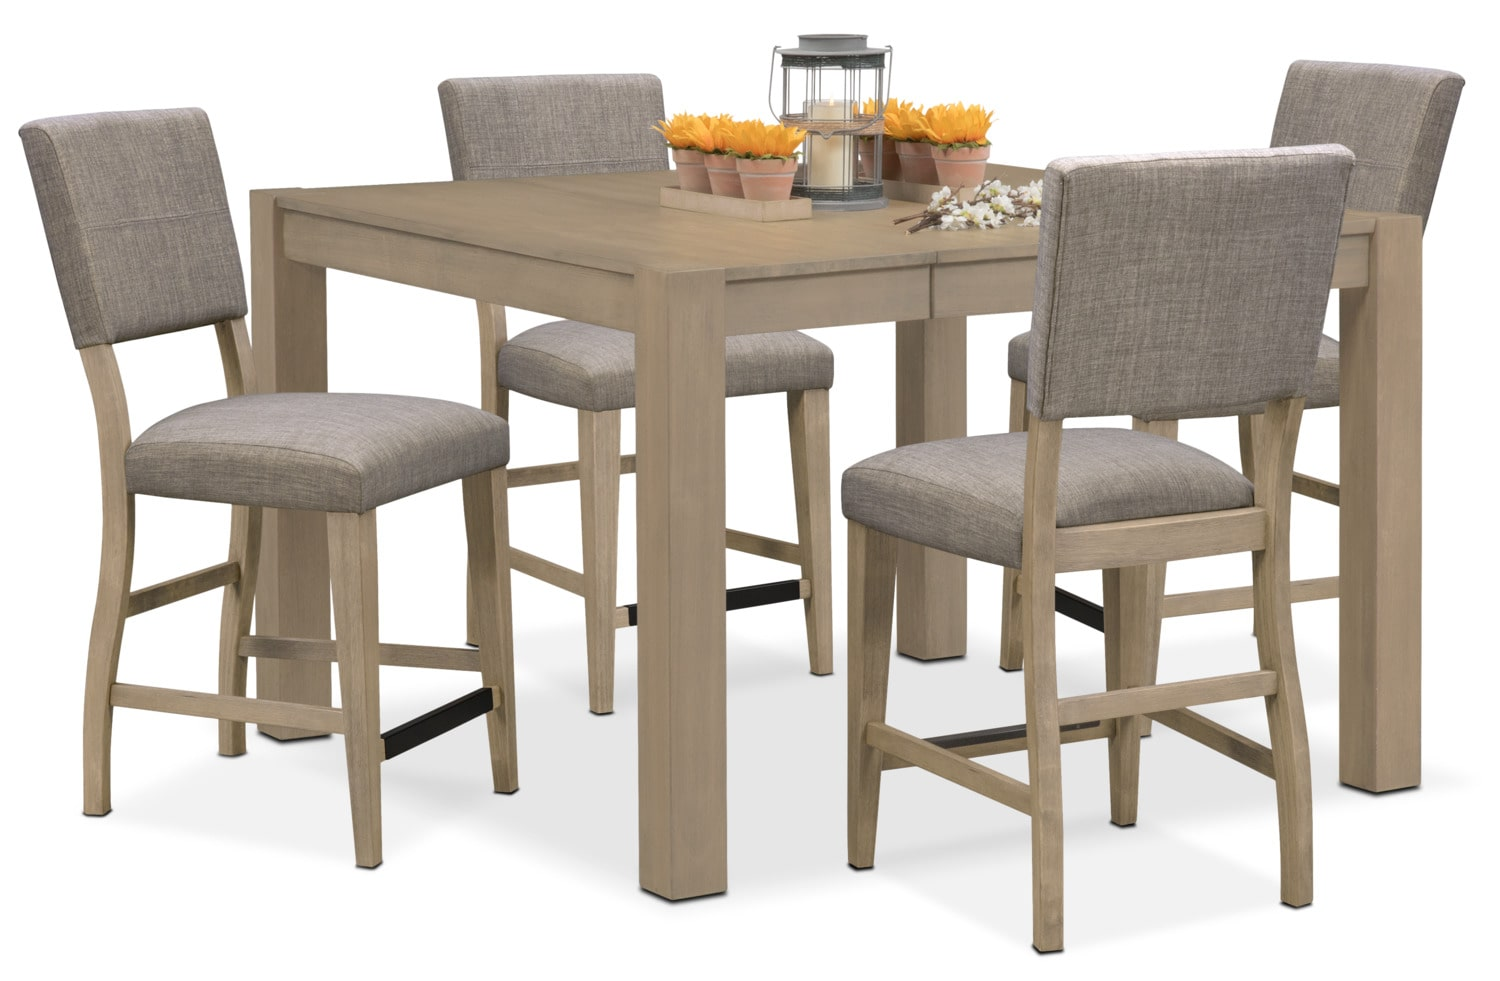 Counter Height Dining Room Chairs Tribeca Counter Height Table And 4 Upholstered Side Chairs